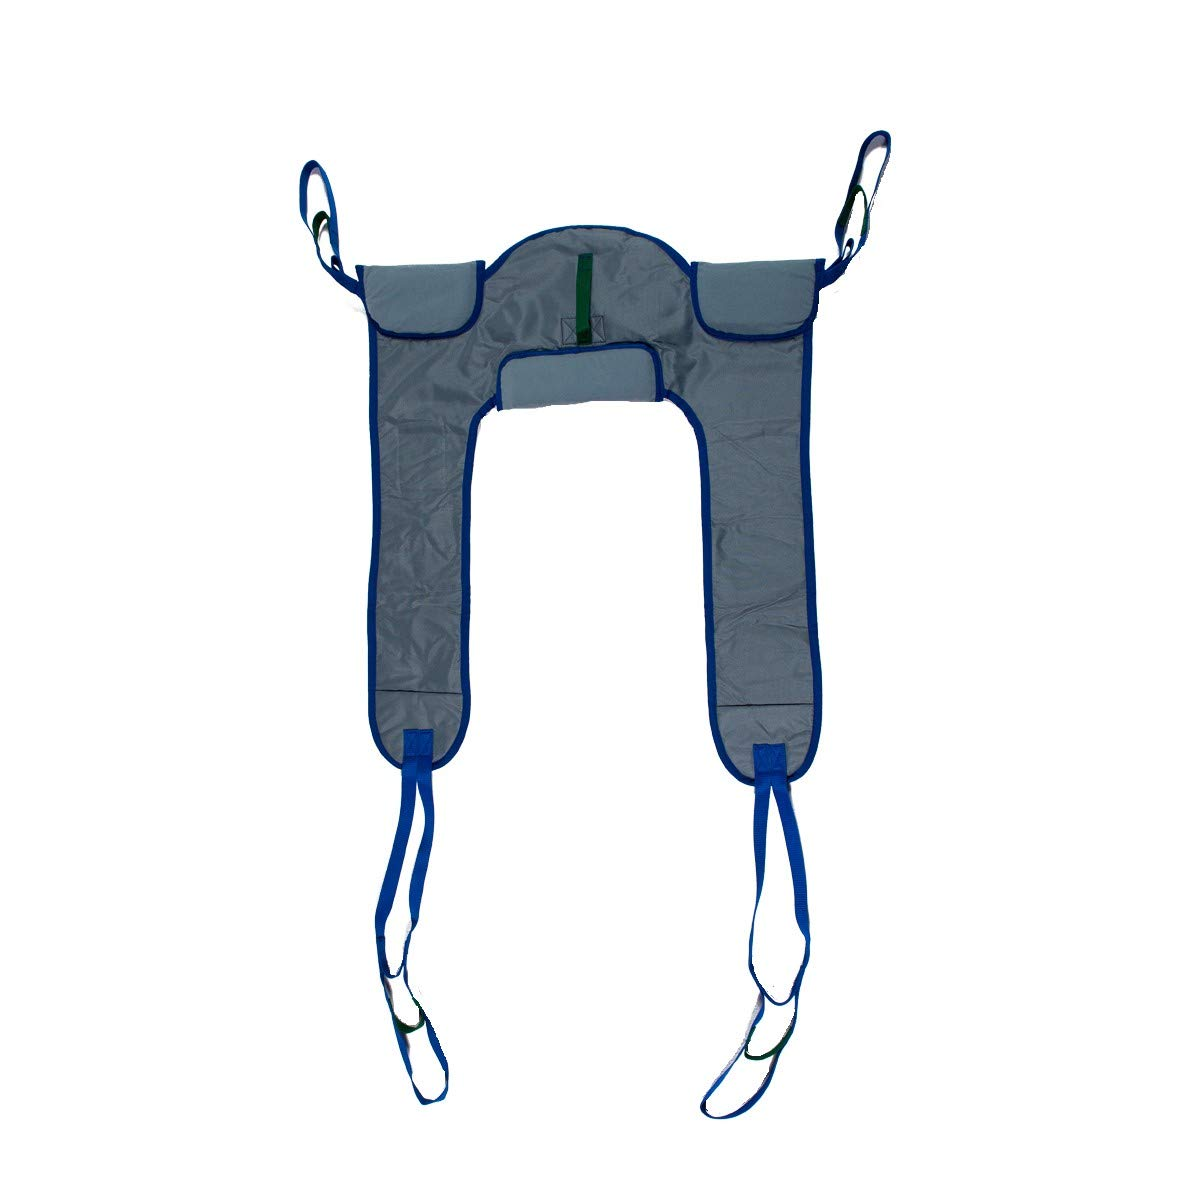 Deluxe Padded Toileting Patient Lift Sling, with Belt, Size (Extra Large), 450lb Weight Capacity